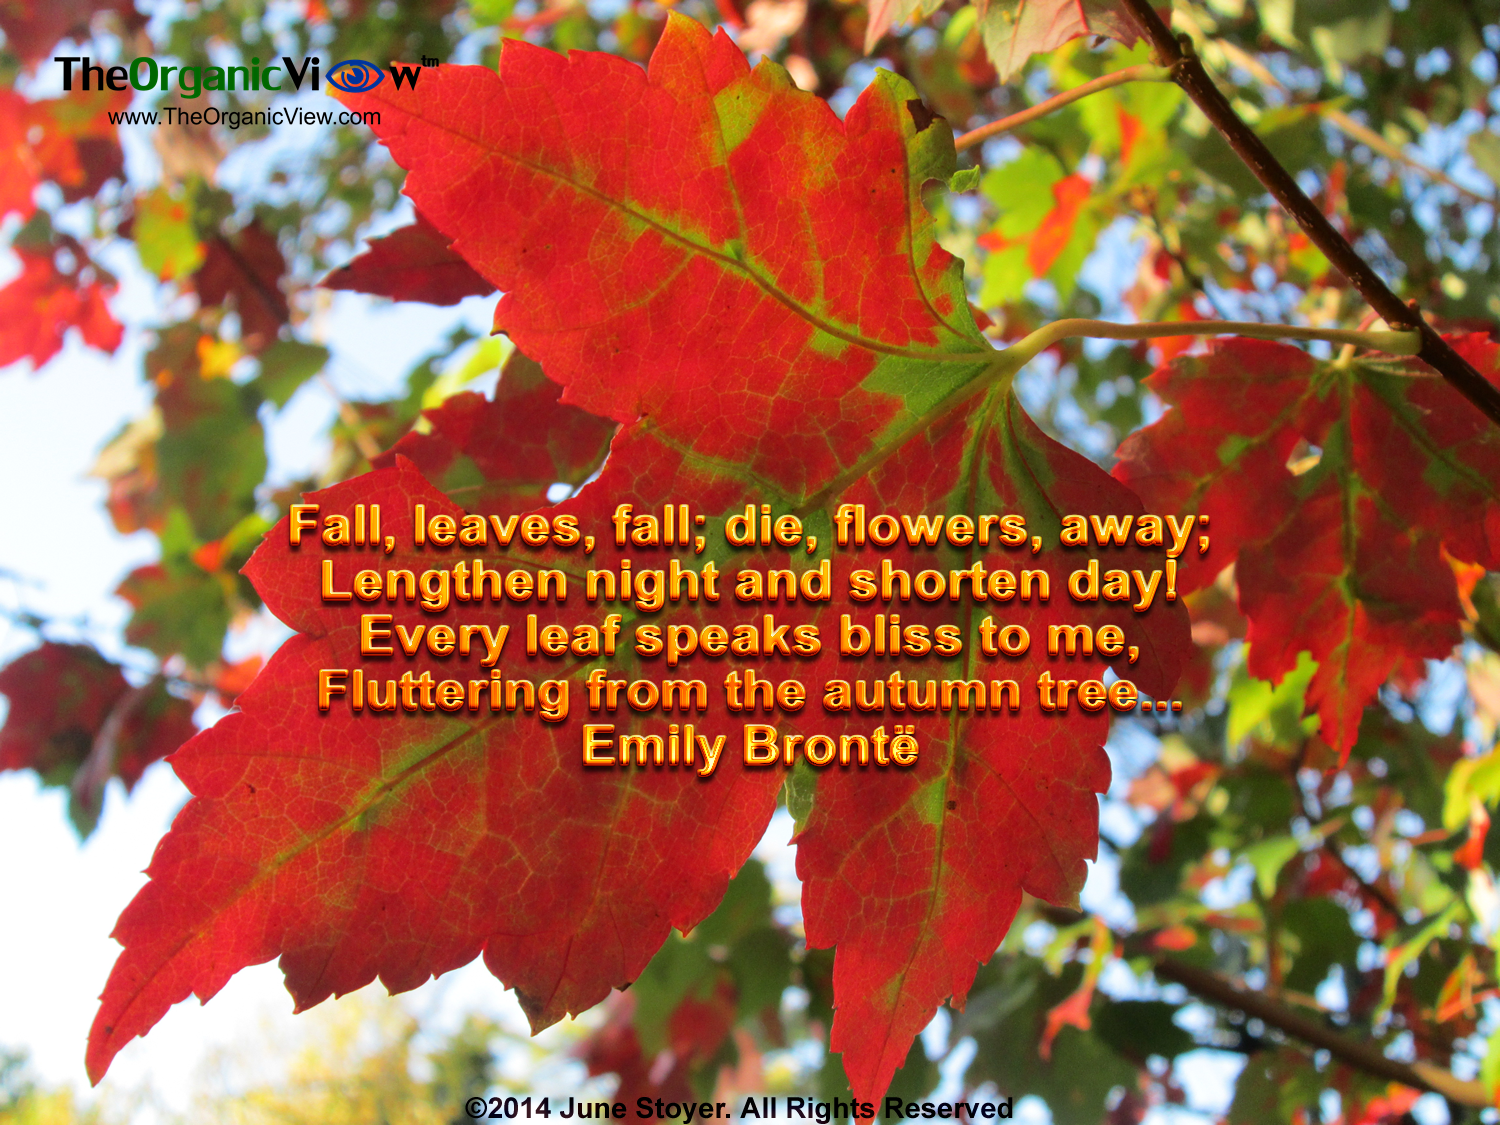 Fall Leaves Fall Die Flowers Away Lengthen Night And Shorten Day Fluttering From The Autumn Tree